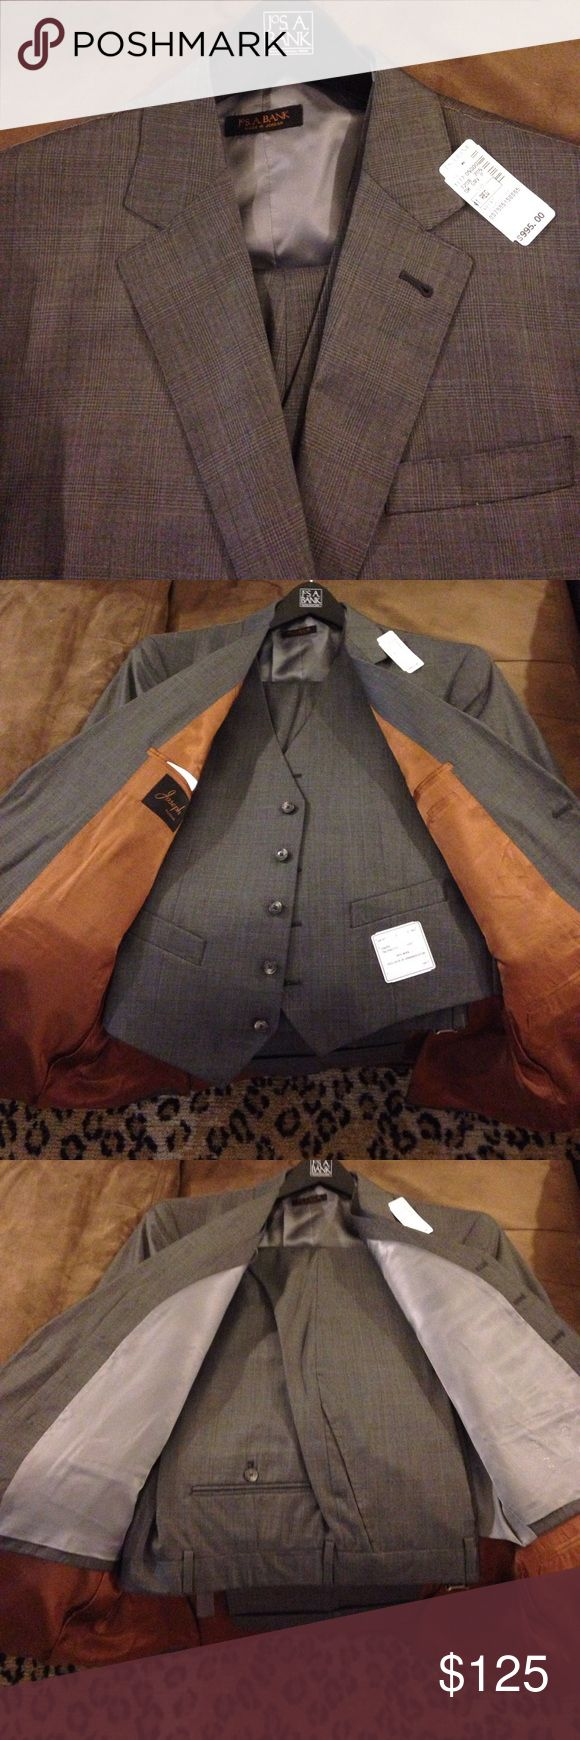 Jos A Bank NWT Grey Glenn Plaid 3 Piece Suit 41R Joseph By Jos. A. Bank Grey Glenn Plaid 3 Piece Tailored Fit Suit size 41R Regular, 2 Button and Double Vented! Pants are size 36x30, Flat Front and Cuffed! NEW WITH TAGS!!! Please make REASONABLE offers and Bundle! Ask questions :) Jos. A. Bank Suits & Blazers Suits